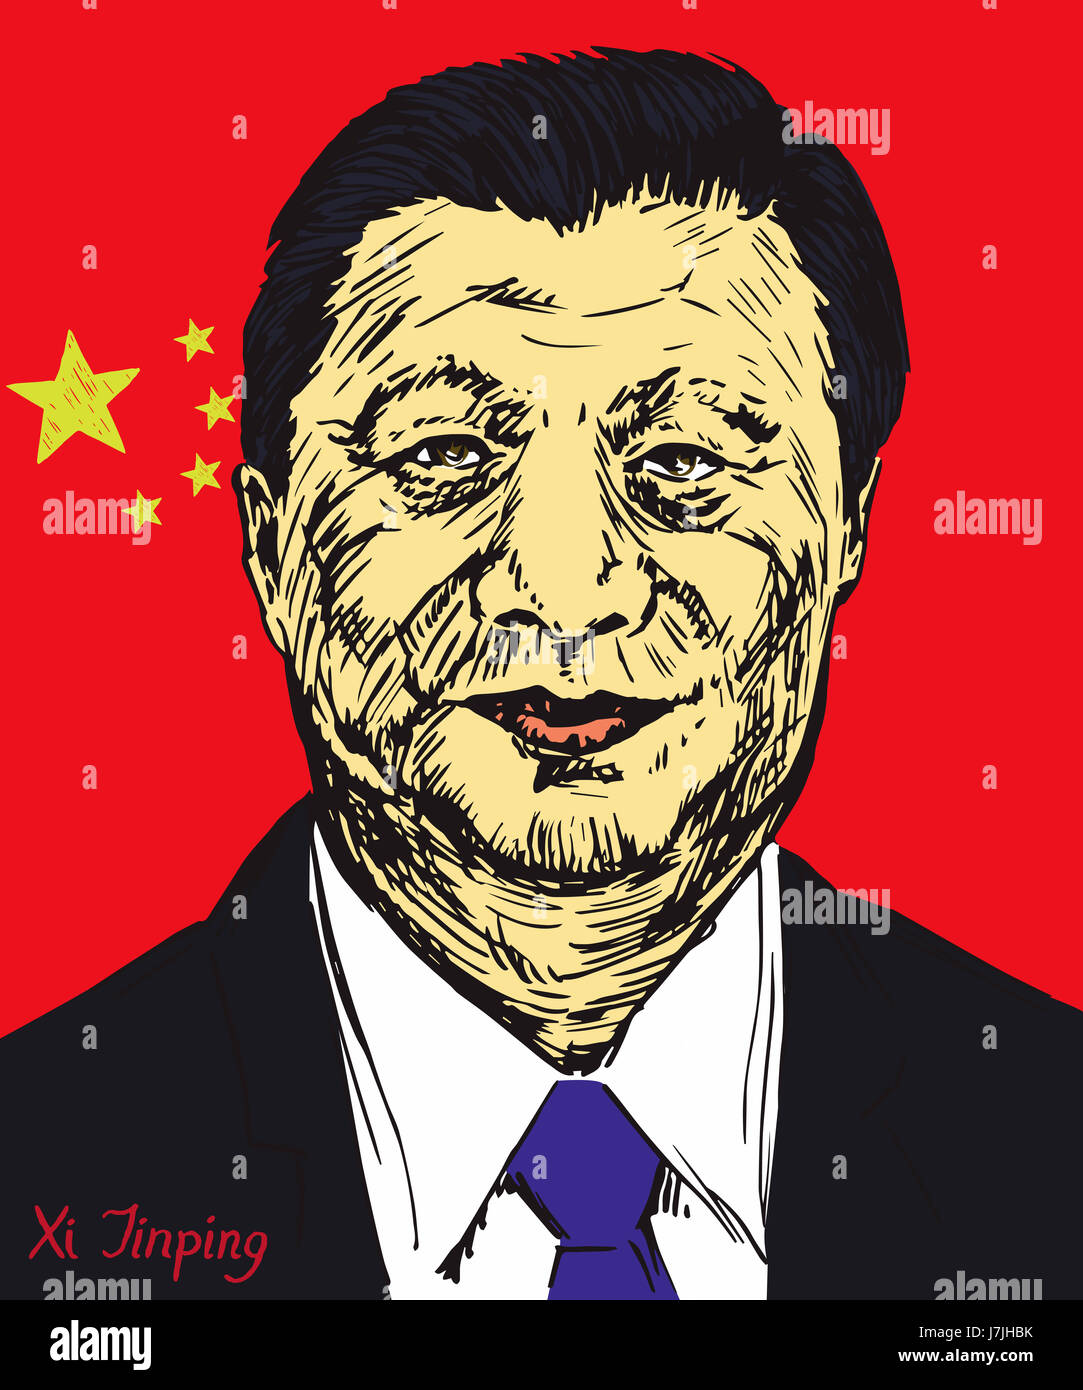 Xi Jinping, General Secretary of Communist Party of China, President of the People's Republic of China, flag - Stock Image